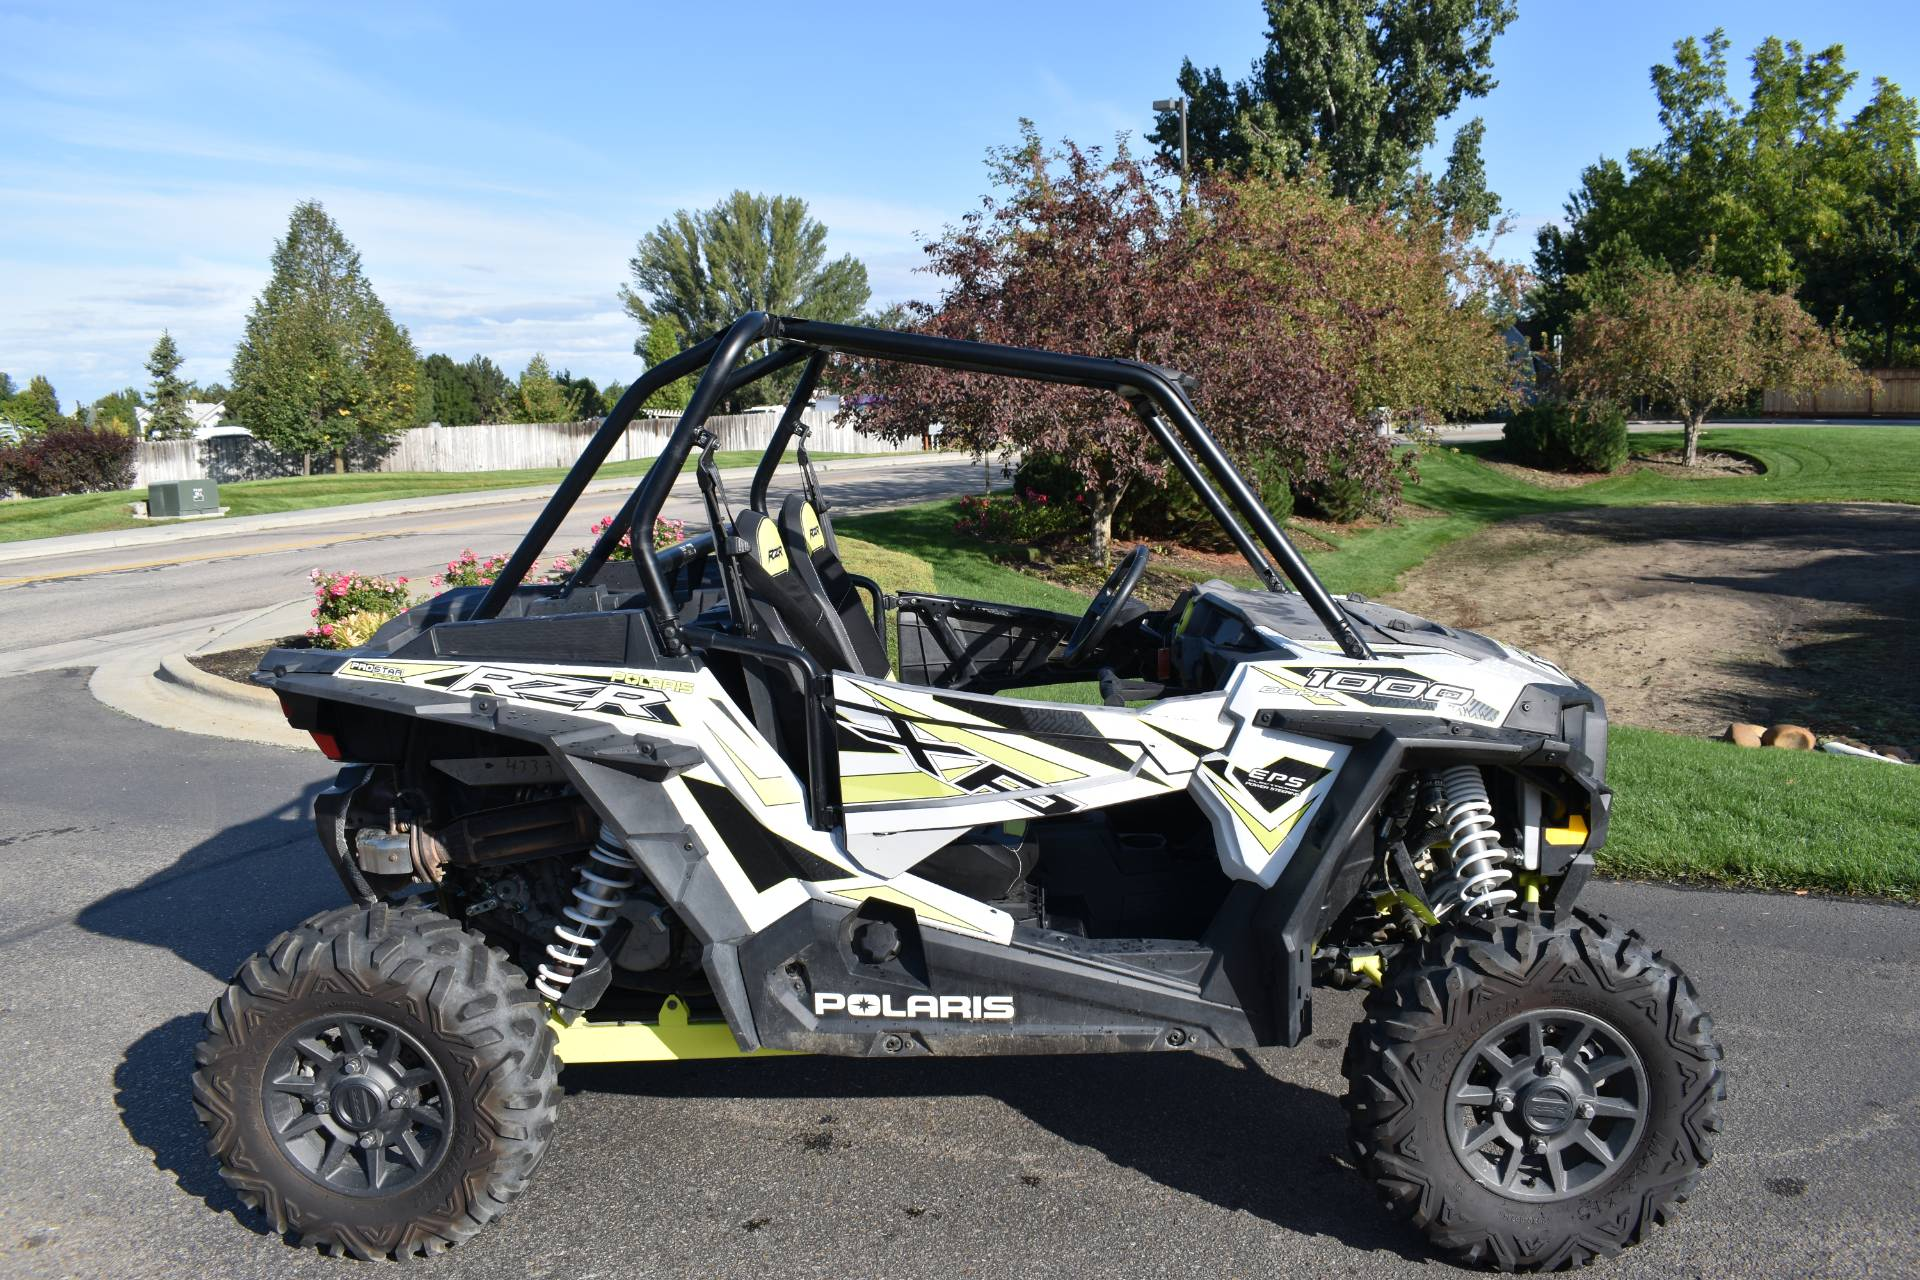 2018 Polaris RZR XP 1000 EPS in Boise, Idaho - Photo 1